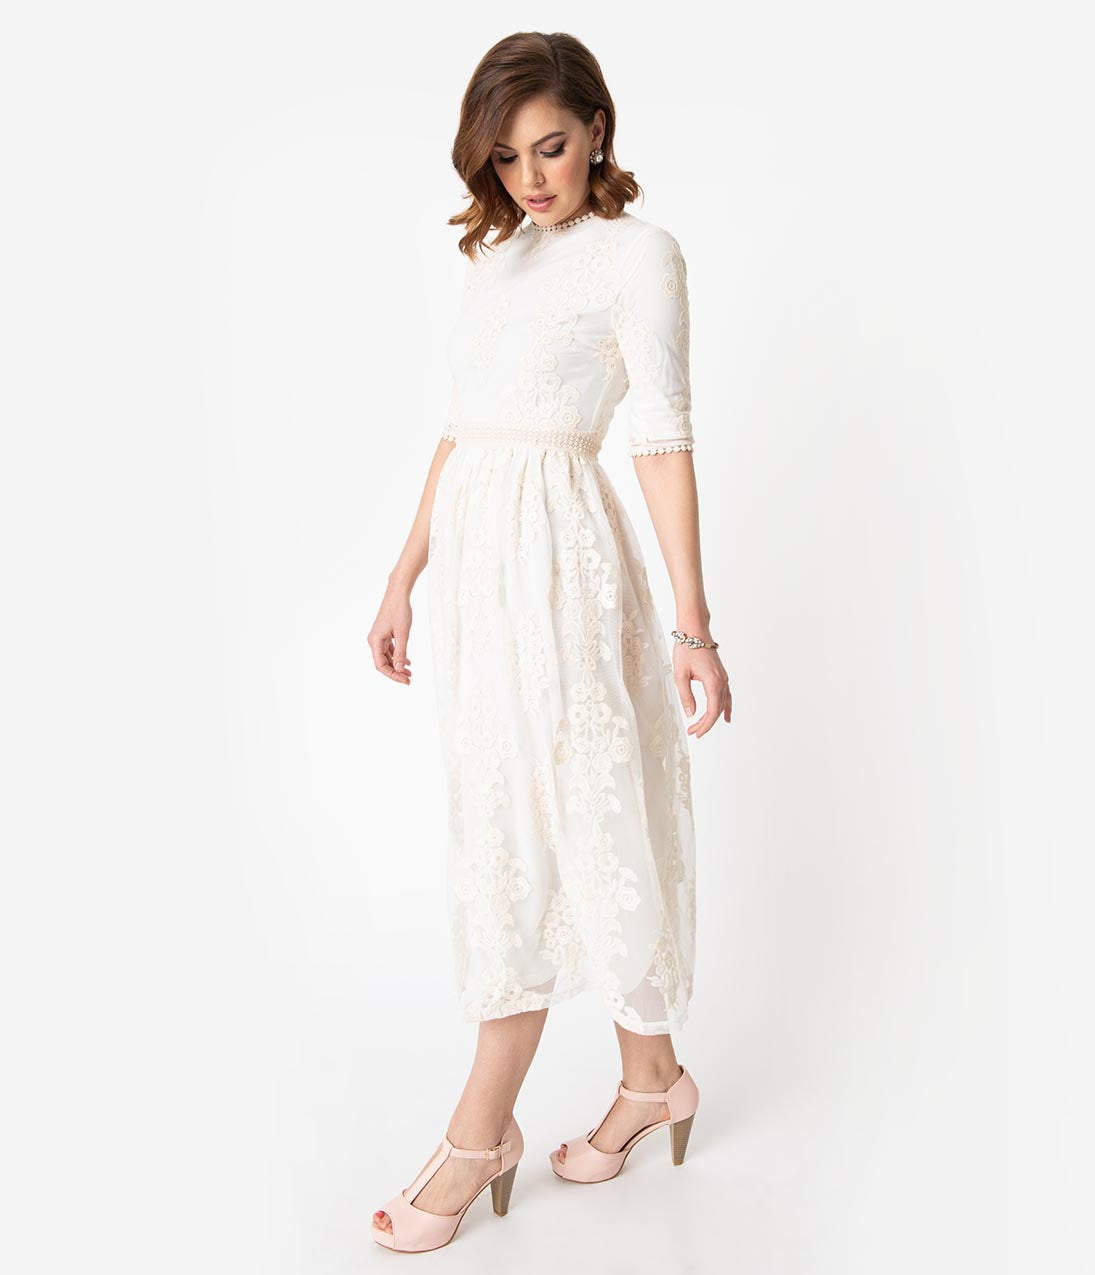 Titanic Dresses & Costumes | 1912 Dresses Vintage Style Antique Ivory Embroidered Lace Modest Midi Dress $48.00 AT vintagedancer.com